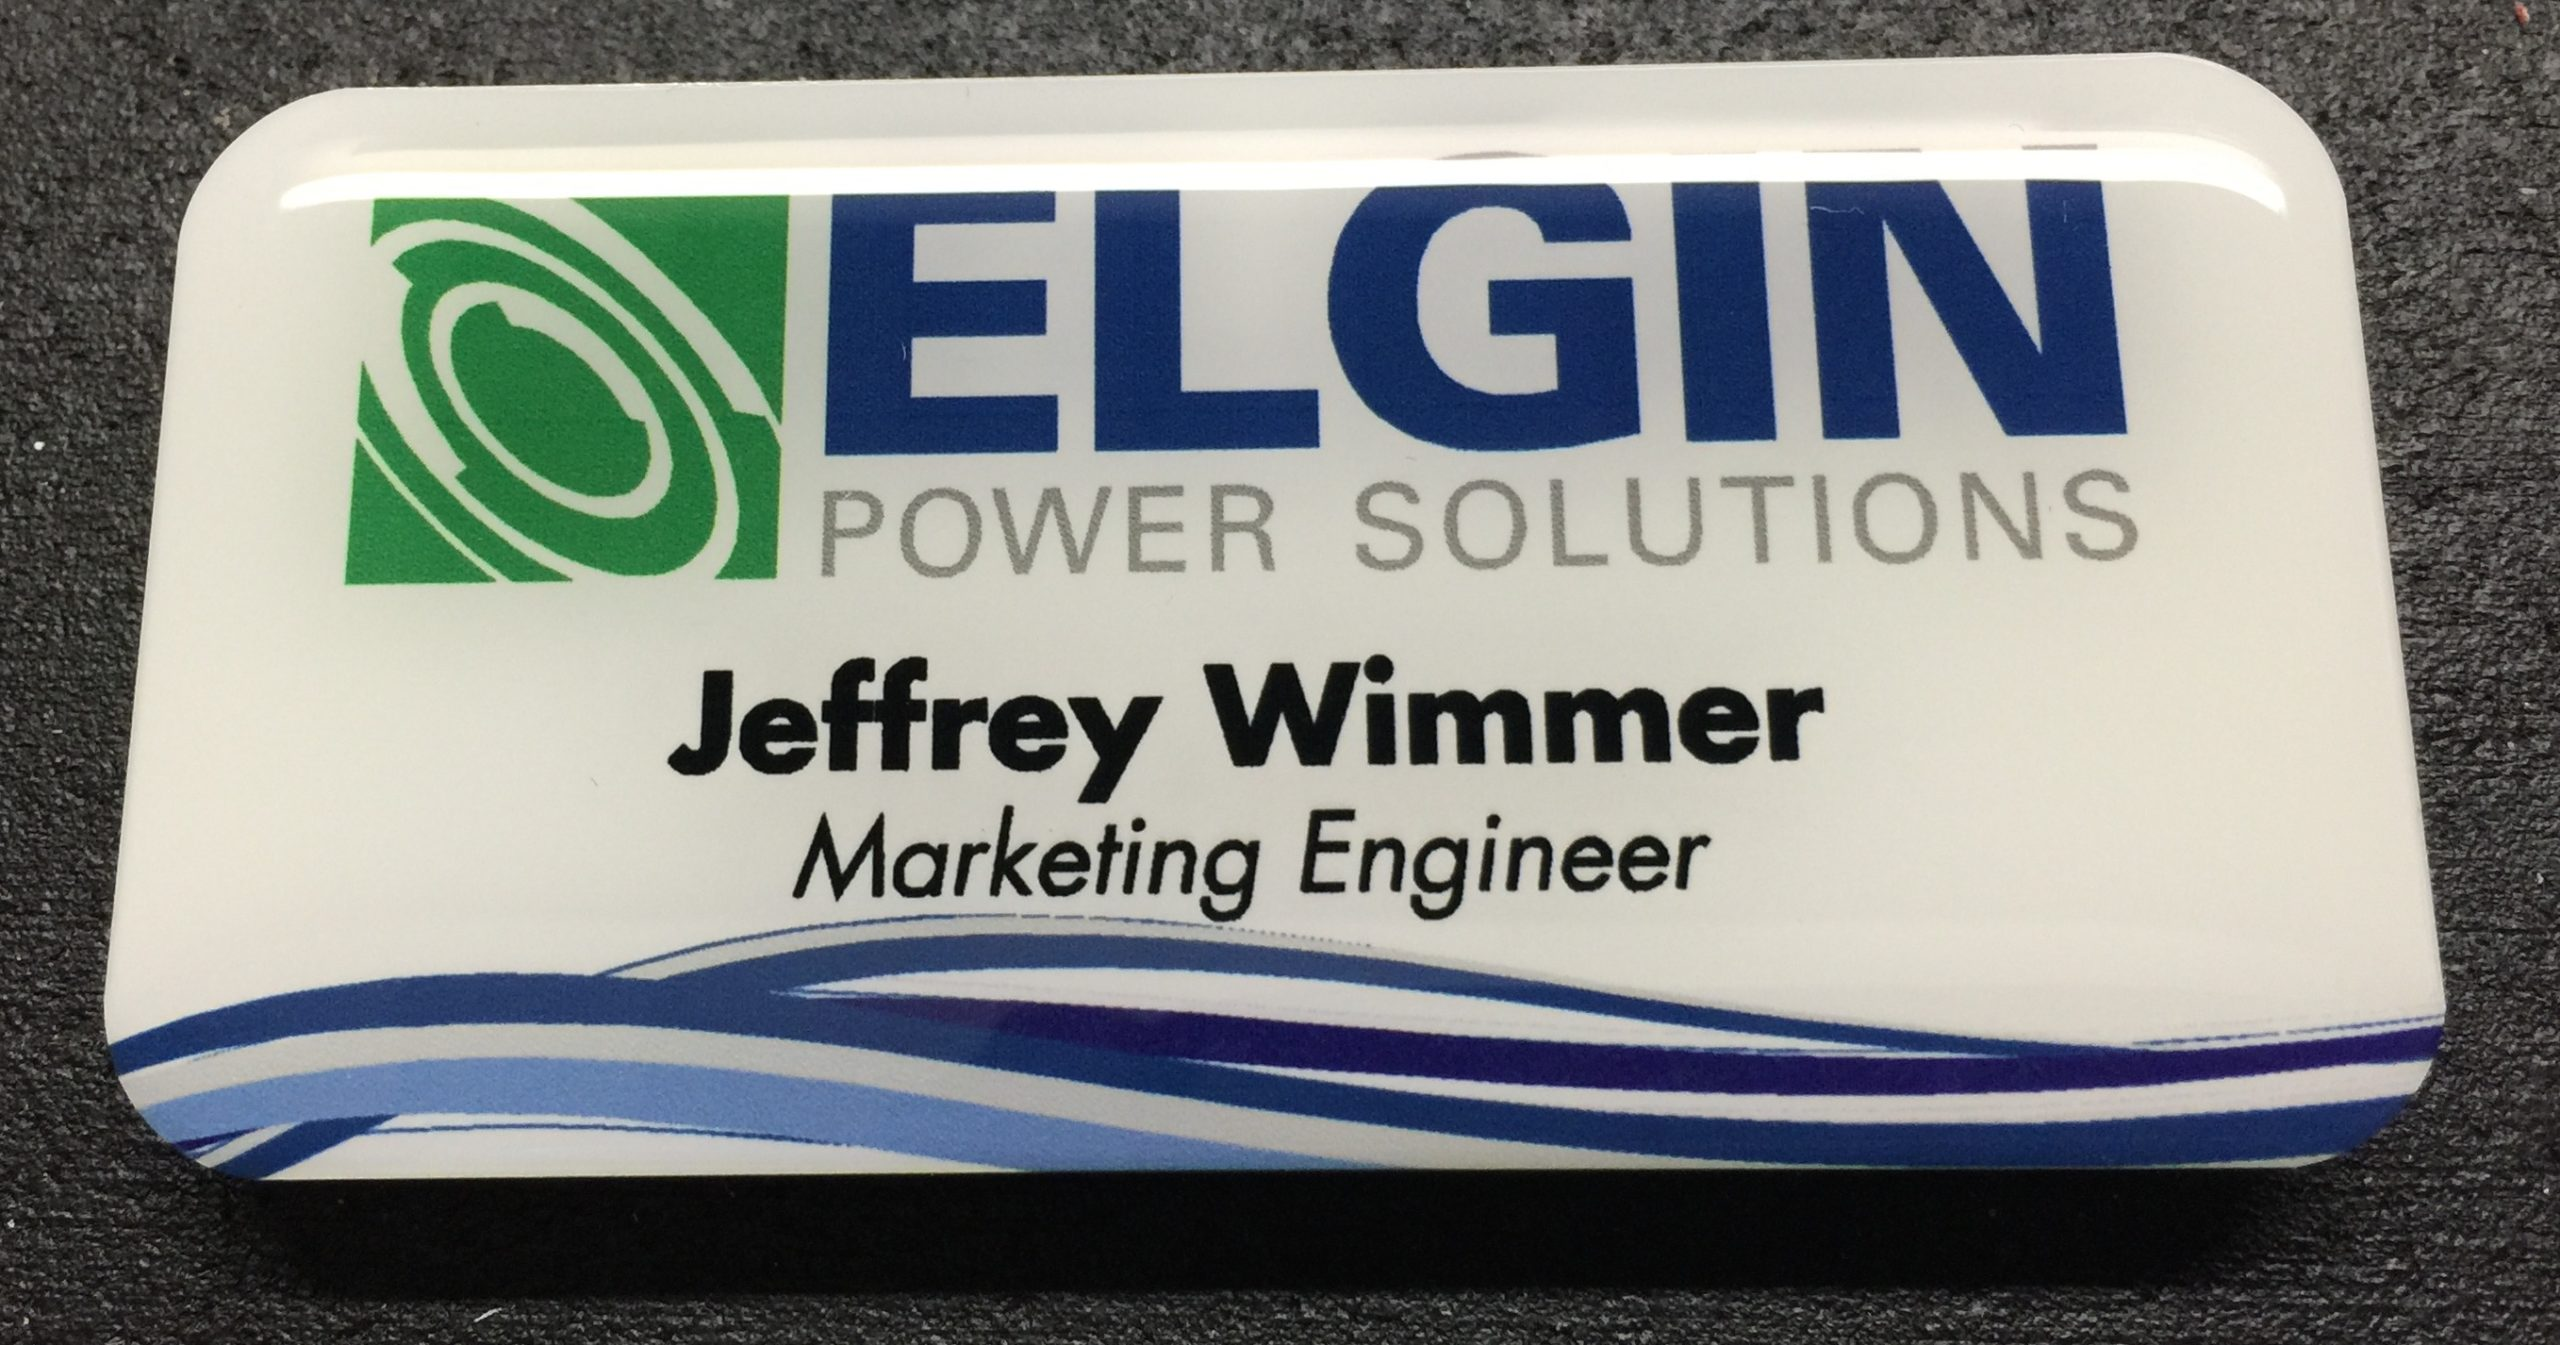 ELGIN Power Solutions